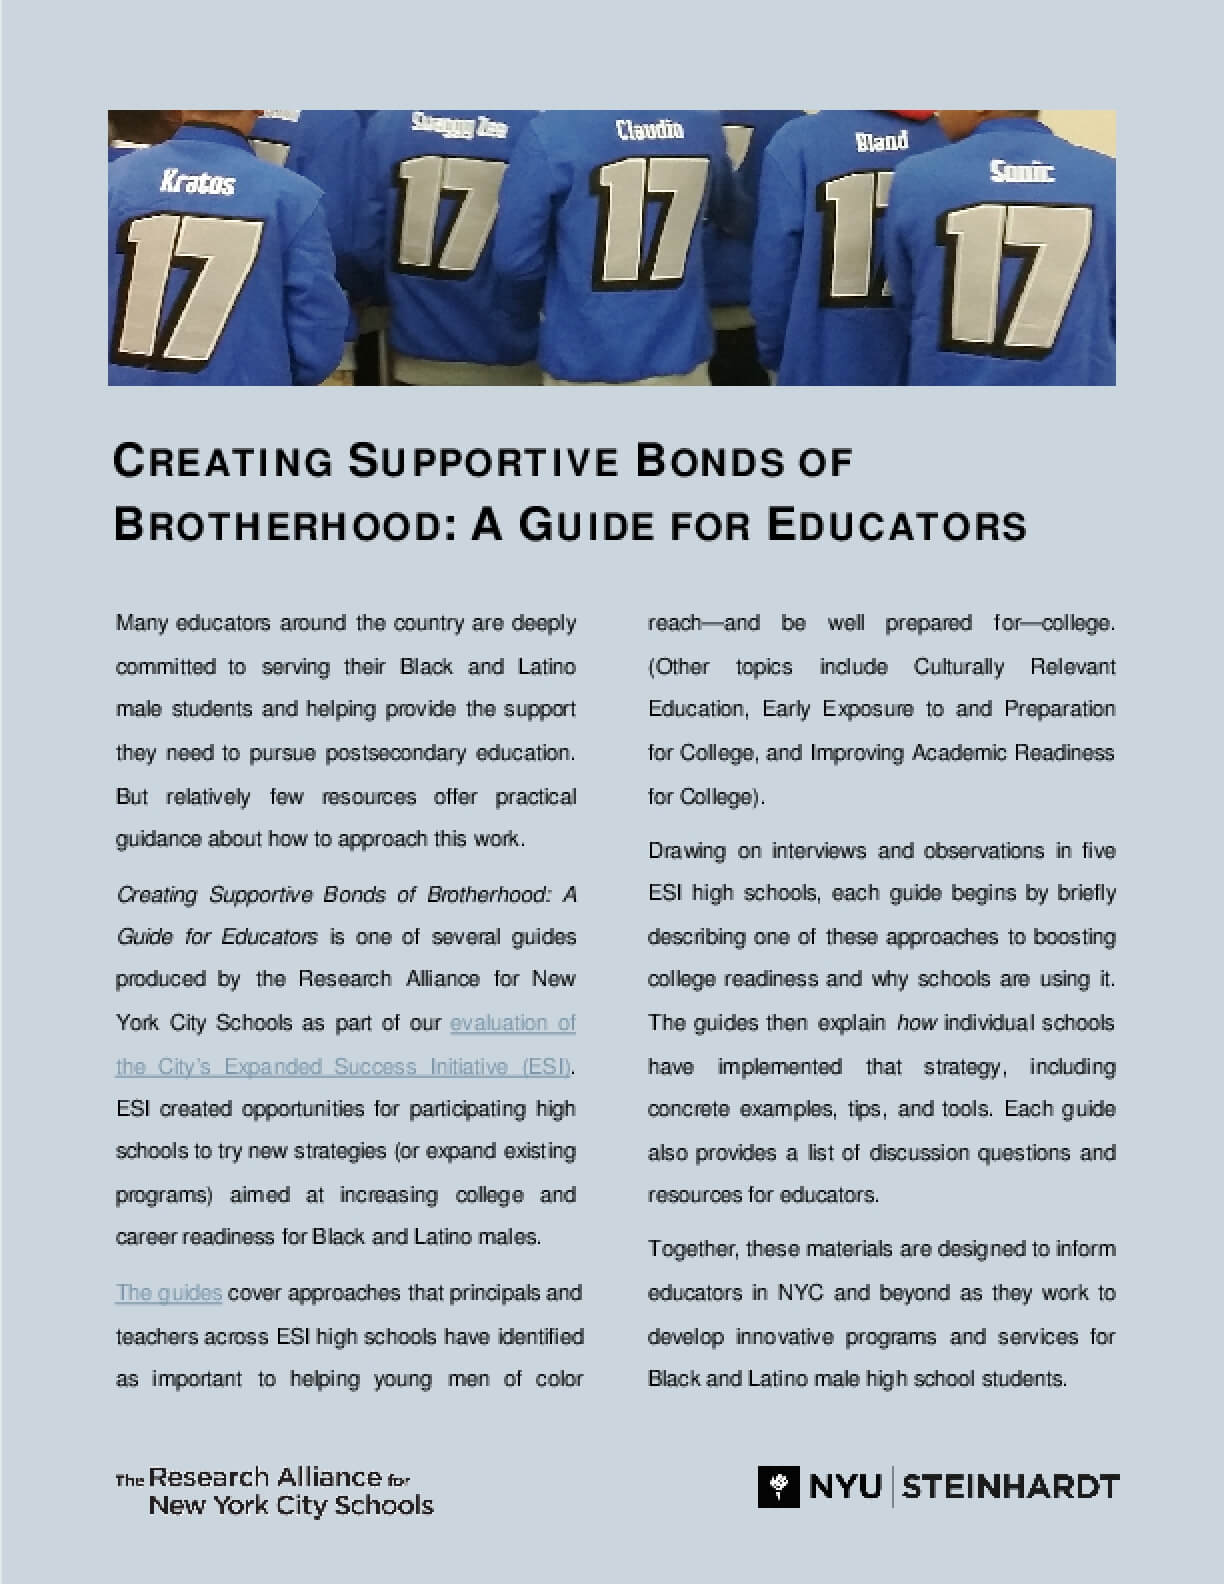 Creating Supportive Bonds of Brotherhood: A Guide for Educators